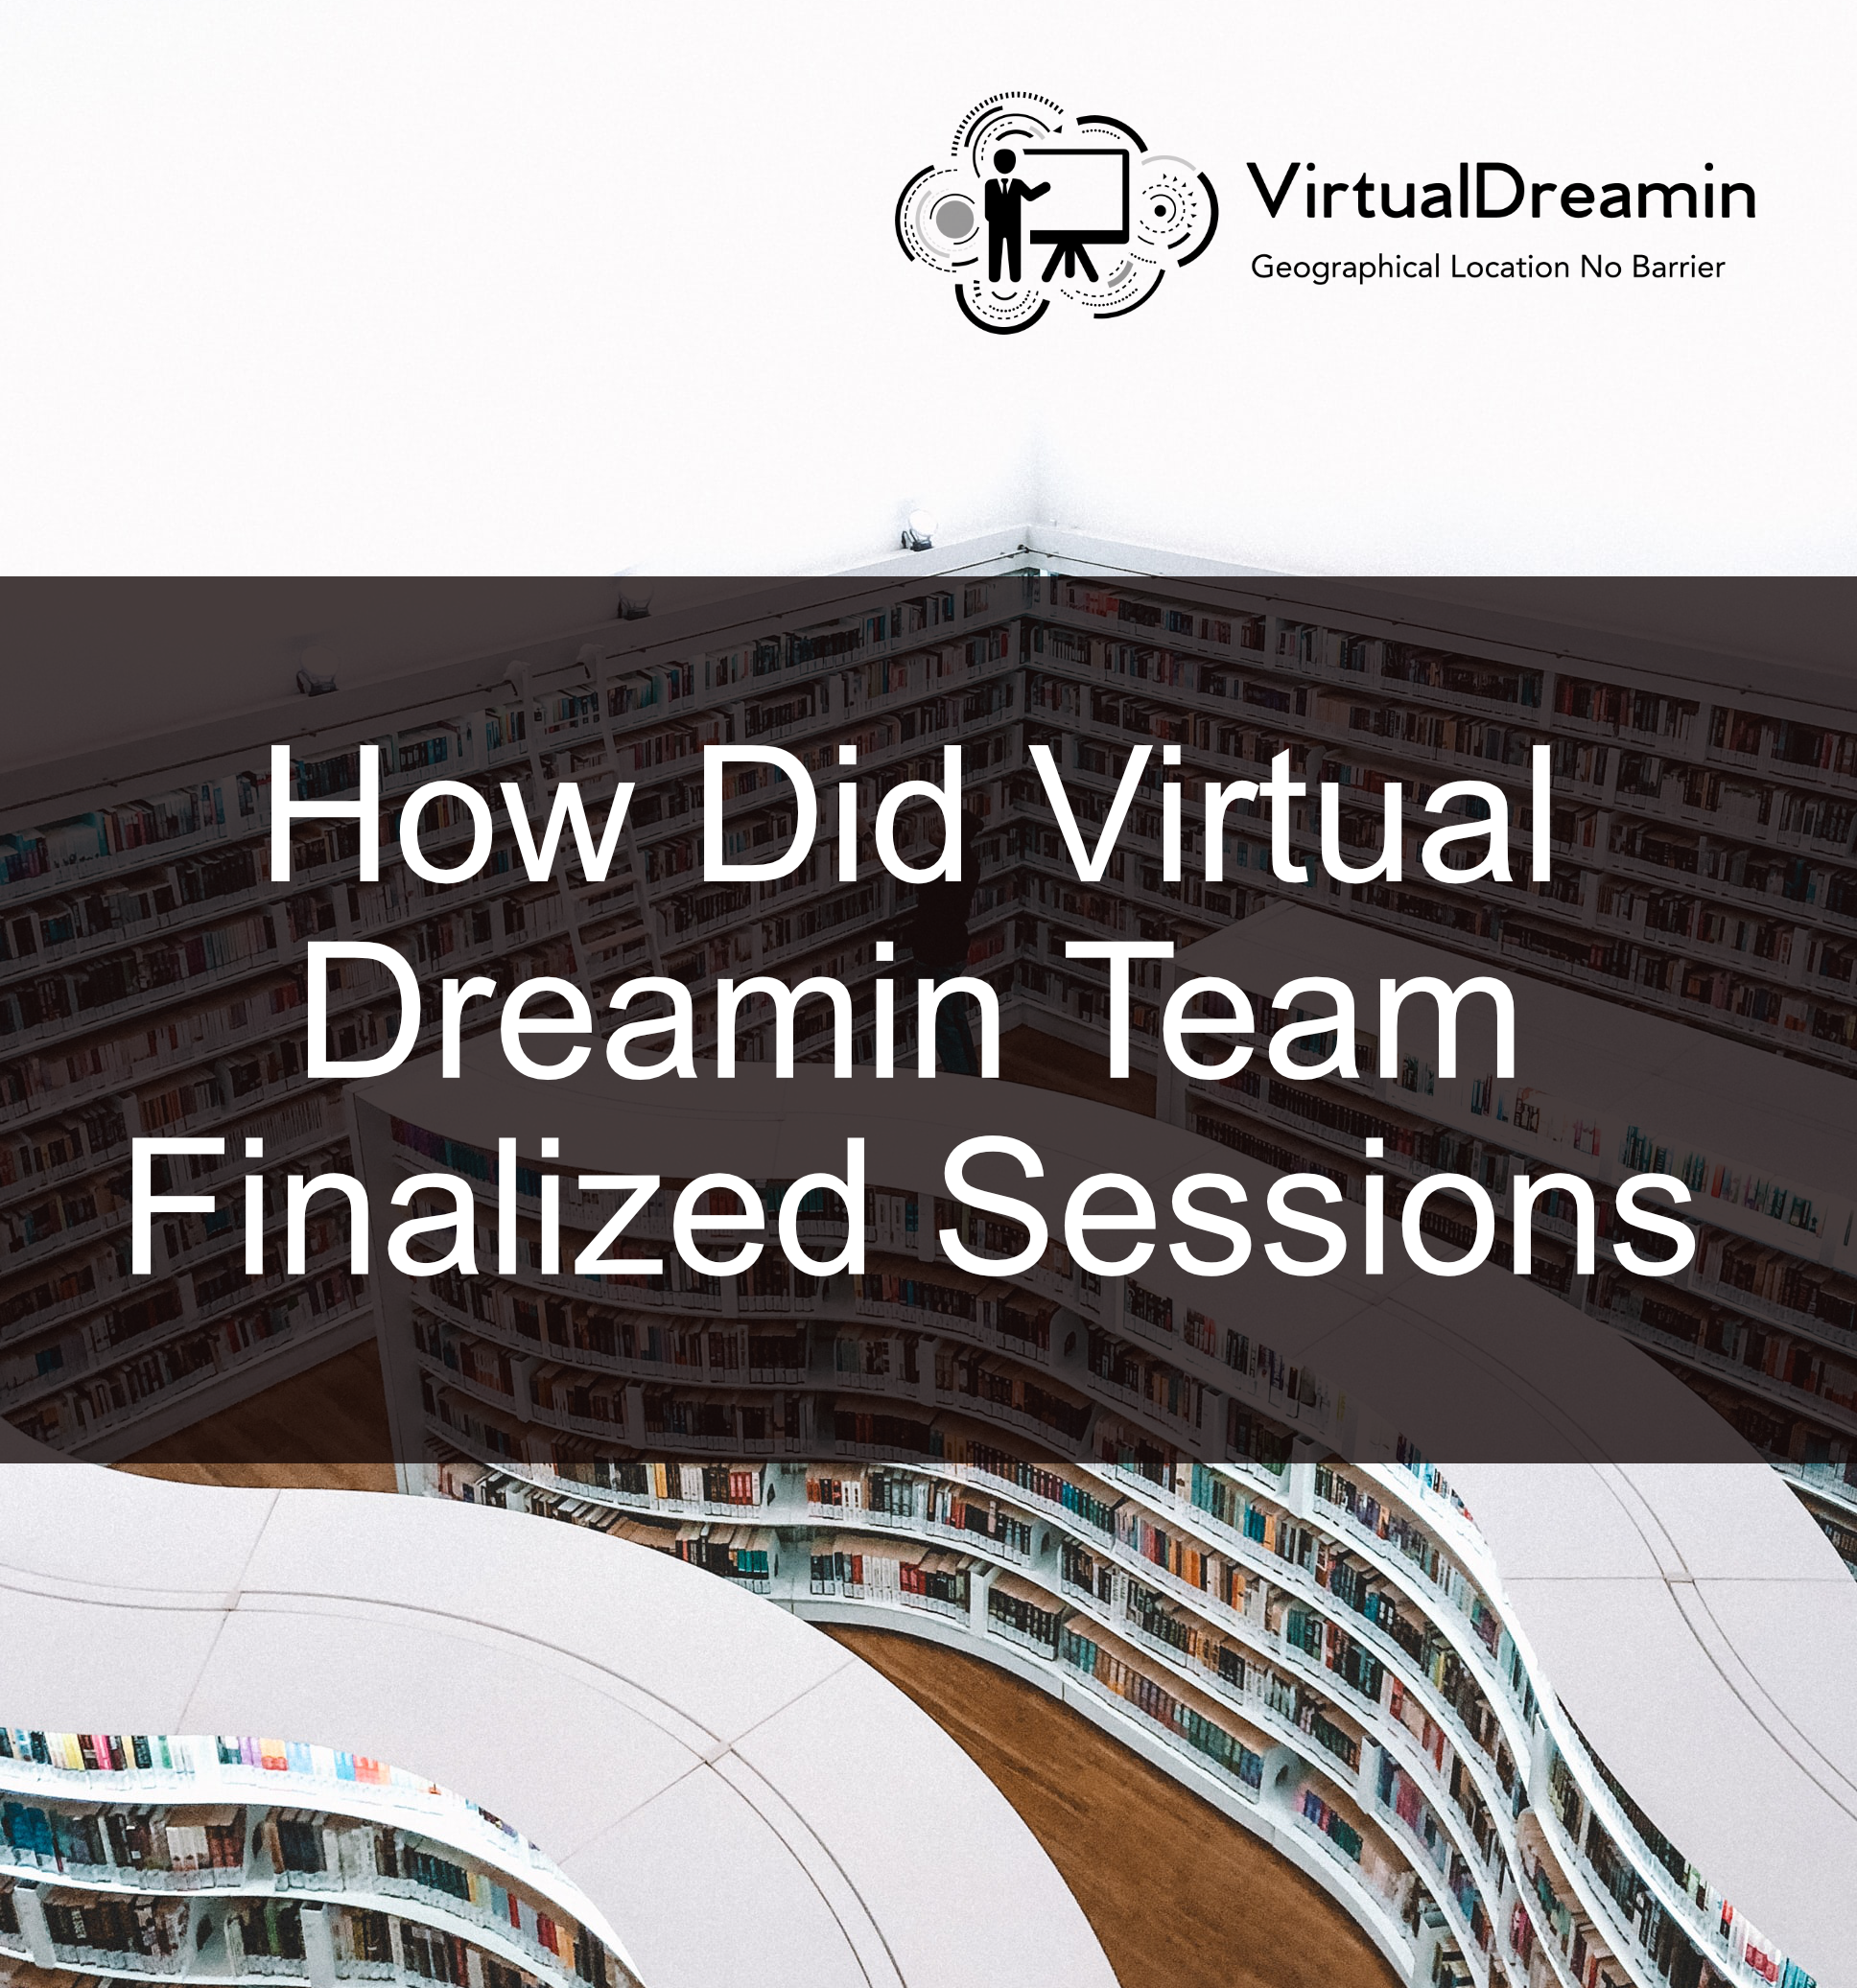 How Virtual Dreamin Finalized Sessions